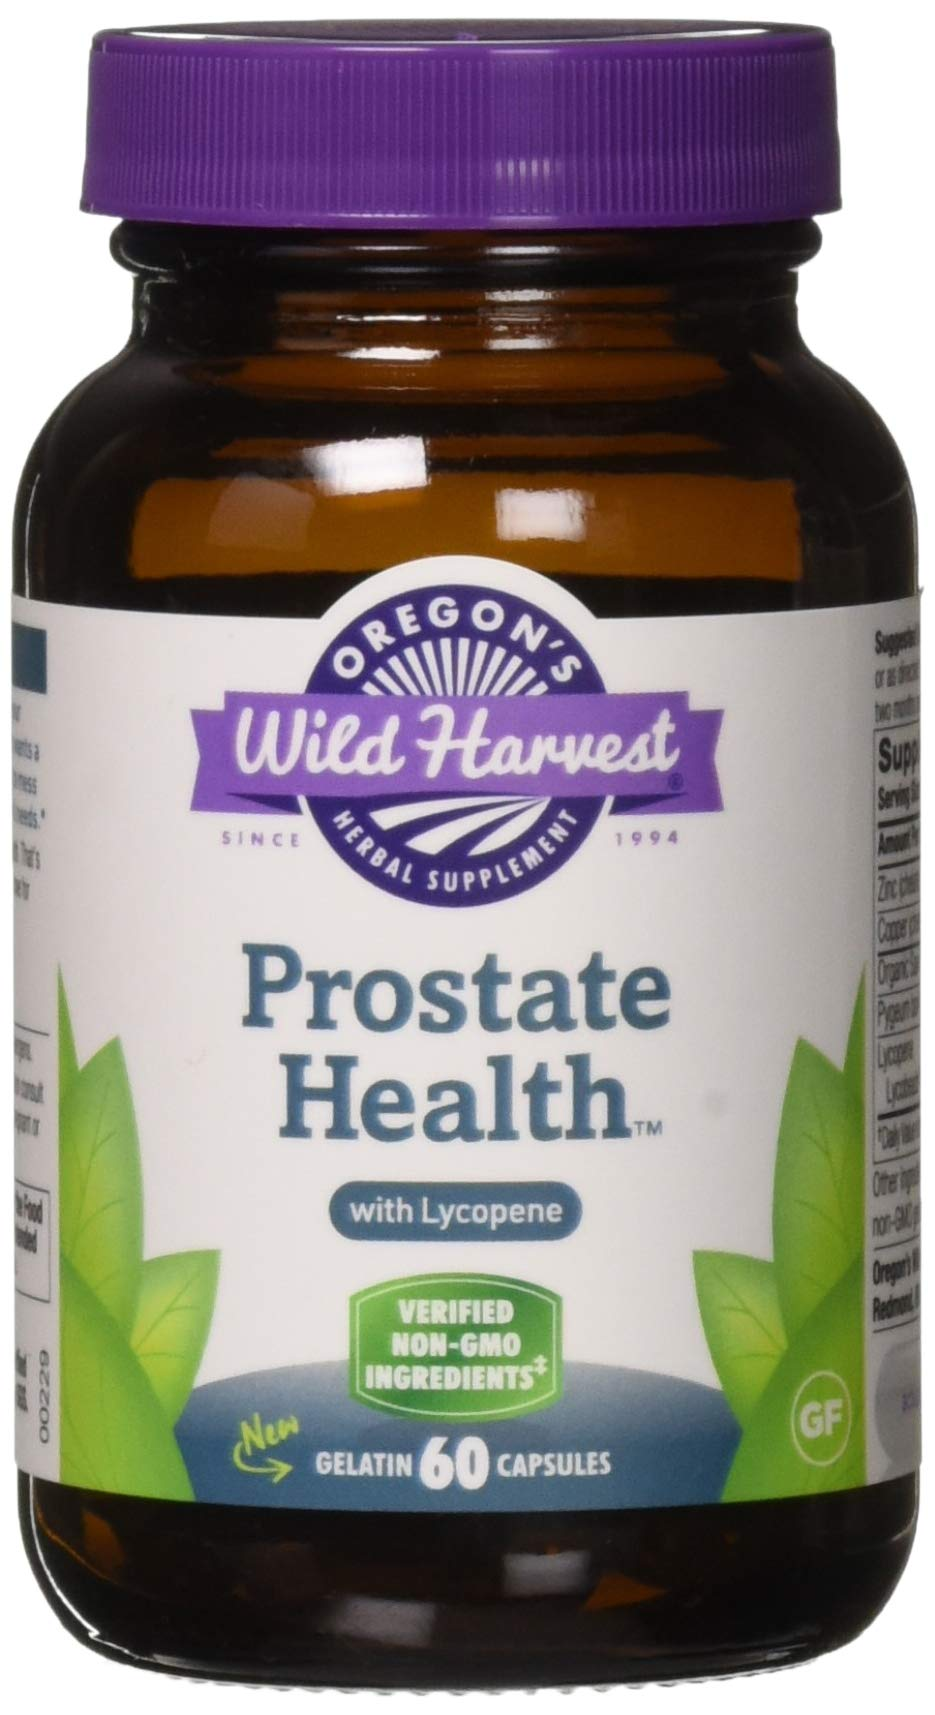 Oregon's Wild Harvest Prostate Health Lycopene Capsules, Non-GMO Herbal Supplements (Packaging May Vary), 60 Count